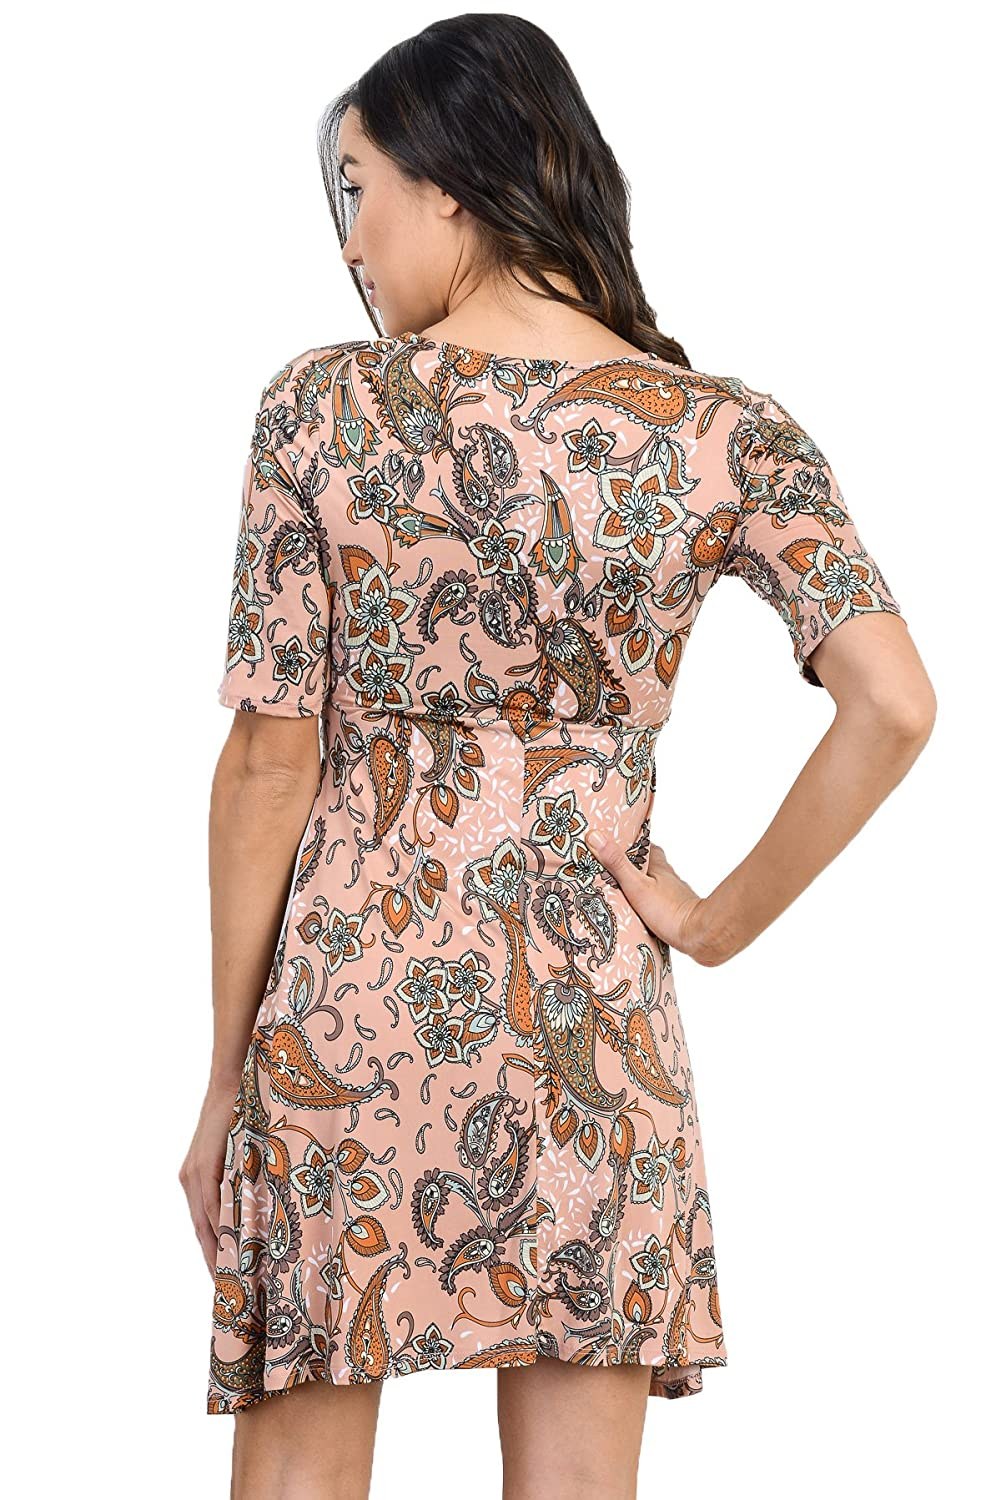 LaClef Womens Flower Print V-Neck Baby Shower Front Tie Maternity Dress